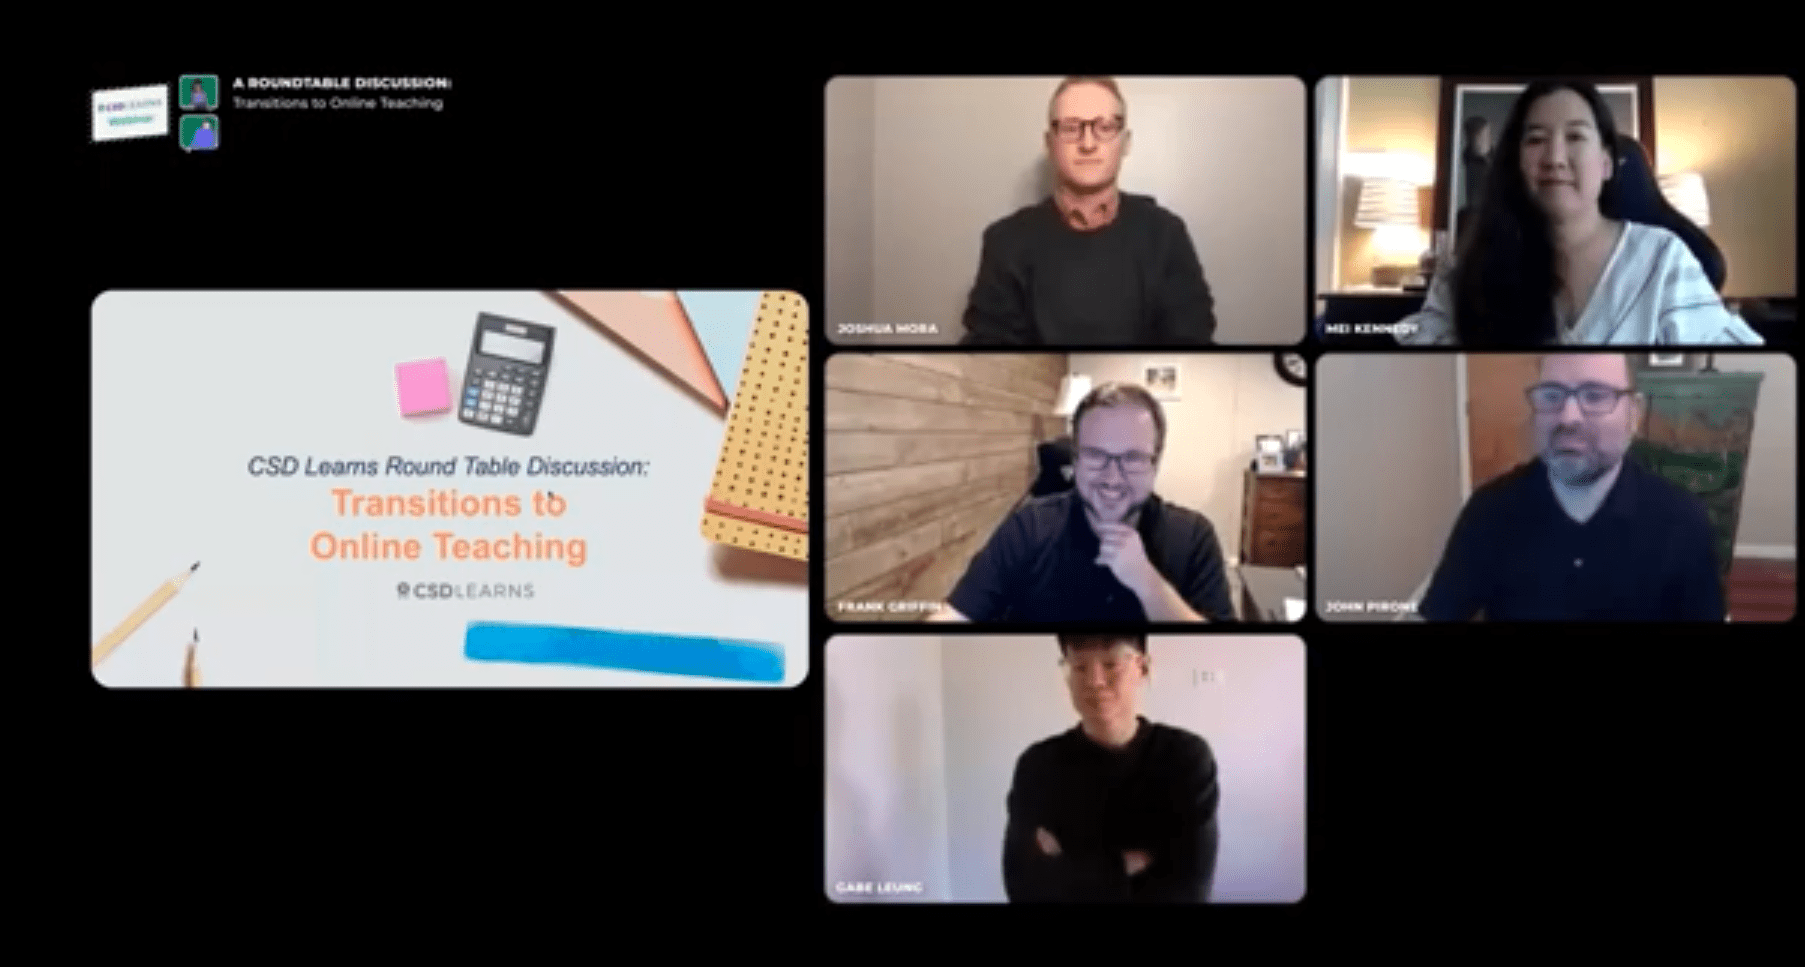 Webinar panelists in a Zoom session